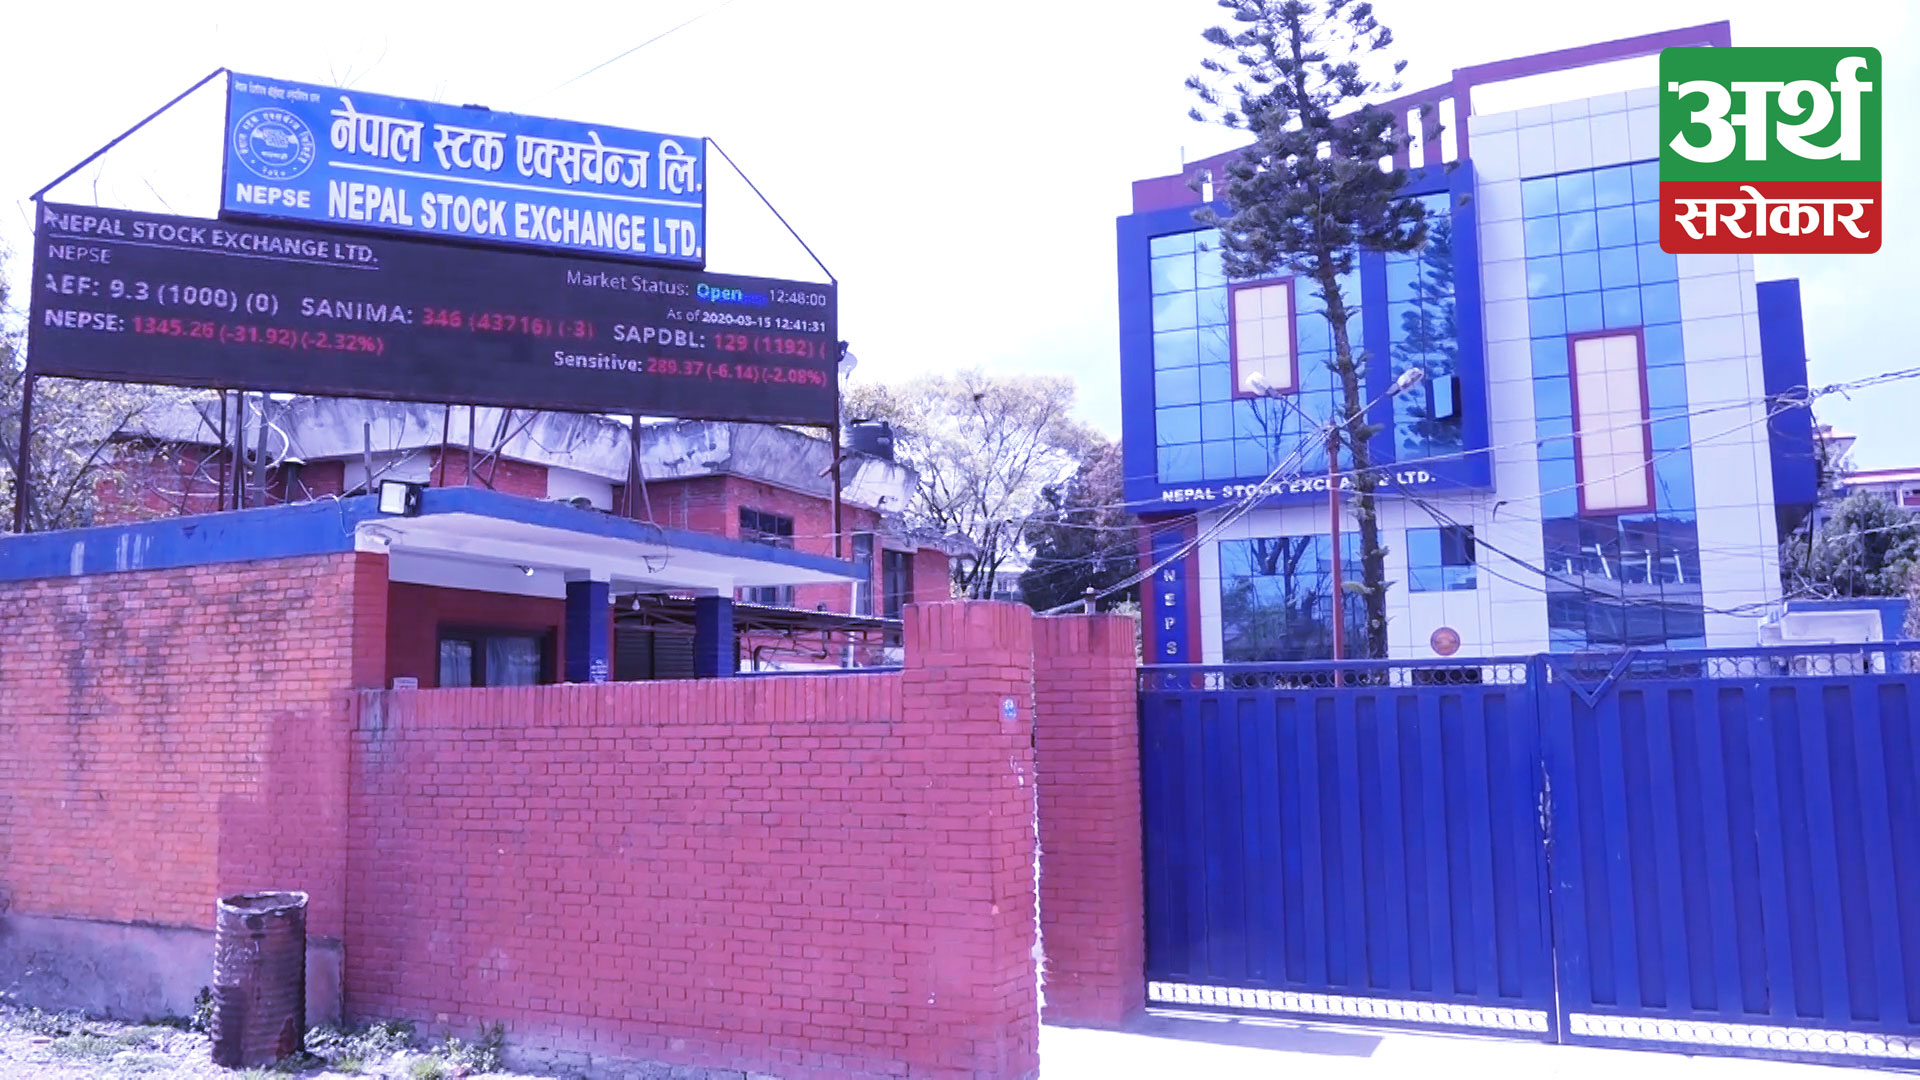 Shares of Nepal Life Insurance traded higher at Rs 9 billion despite the market declining by 16.55 points on Thursday.